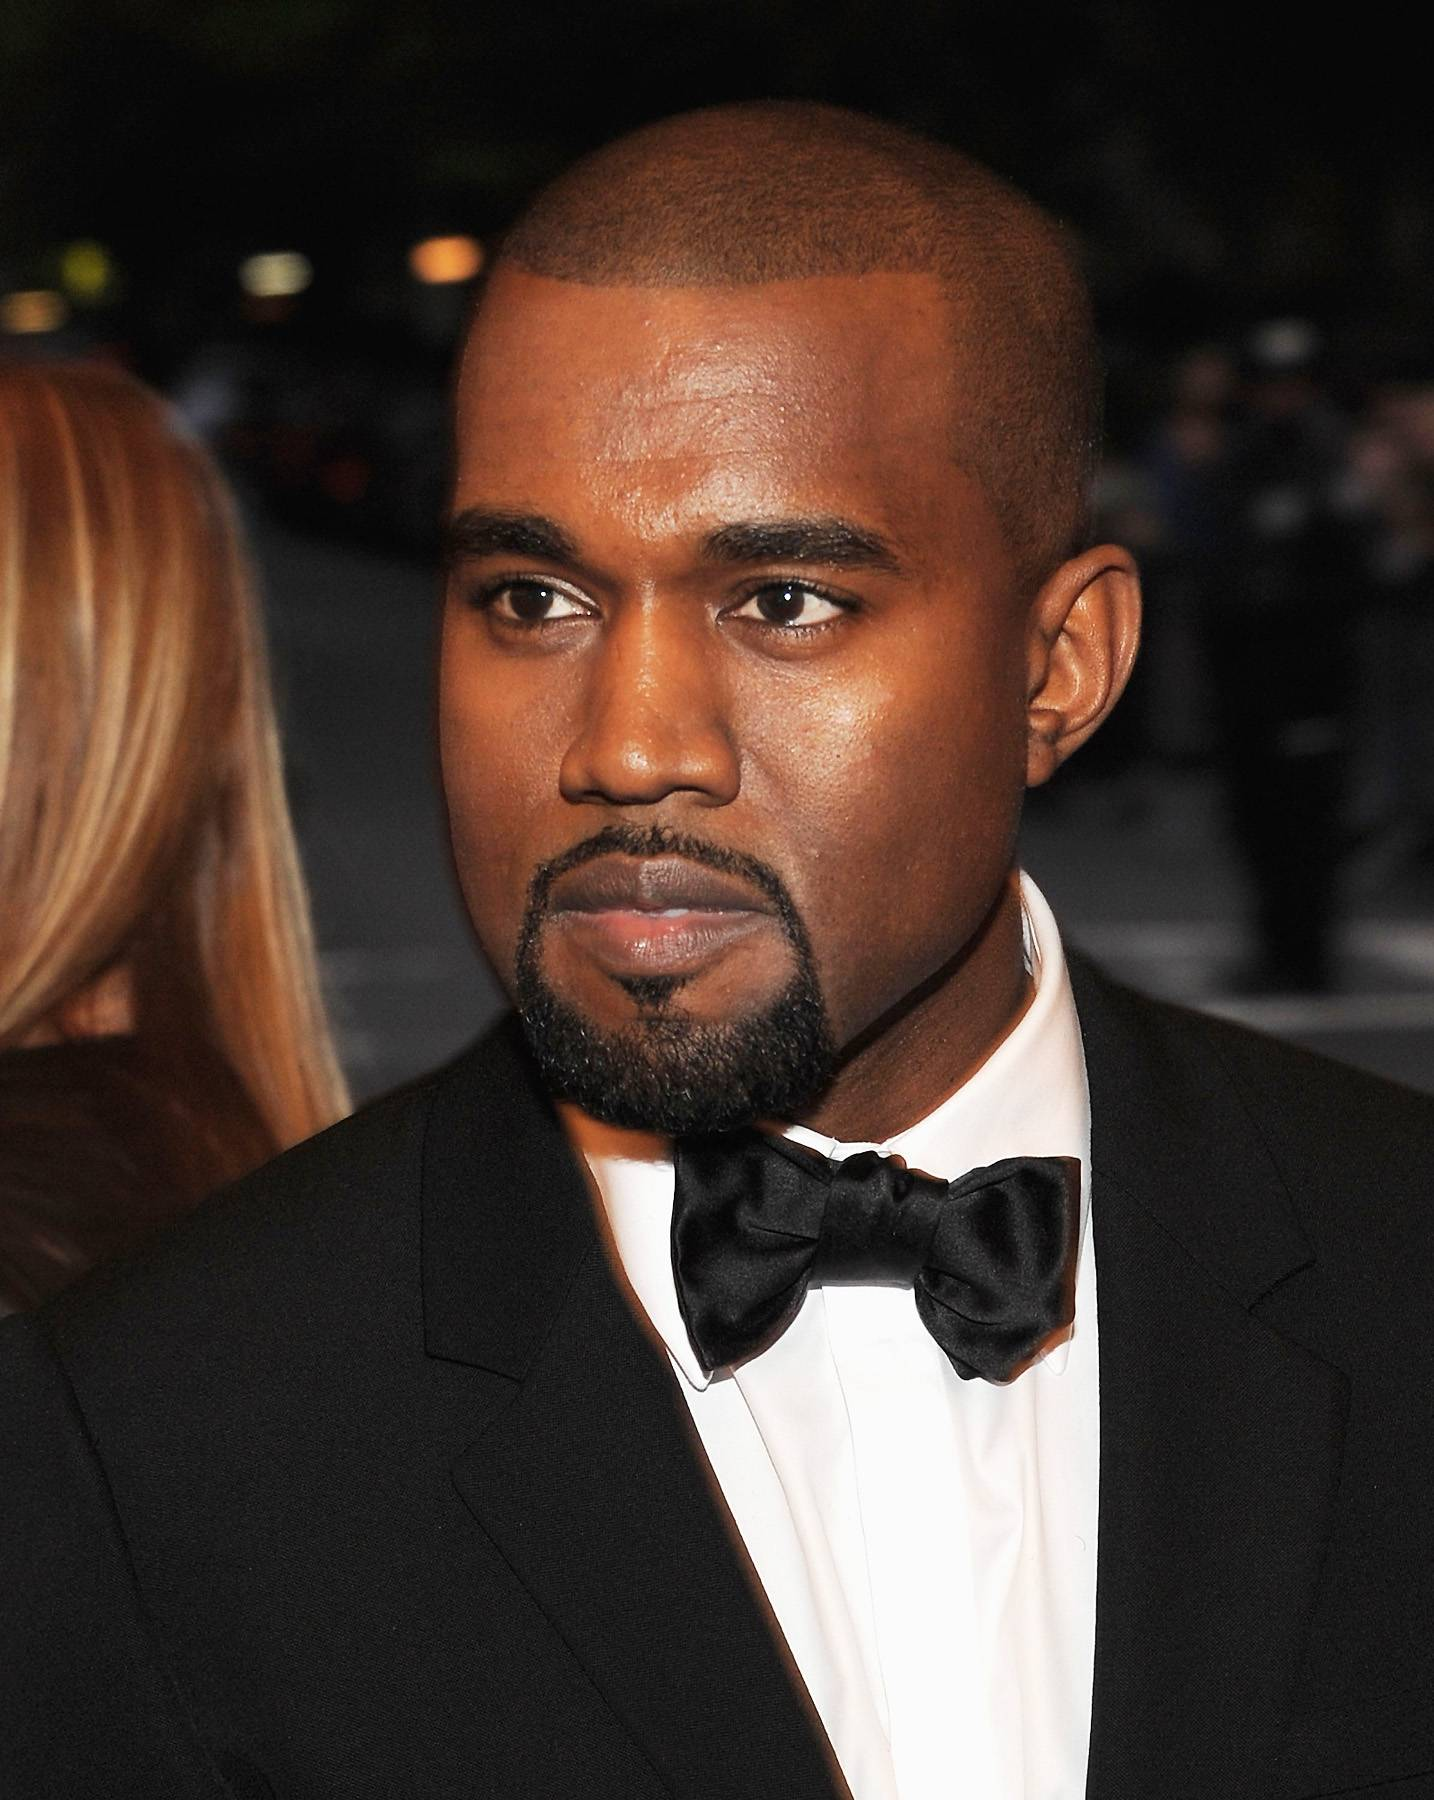 Kanye West - It is well known that Kanye has a passion for fashion, so it was only natural for him to debut his clothing line a year ago. Although there's been some confusion over the official name of the clothing line, one thing is for sure, Kanye's designs are fierce.(Photo: Larry Busacca/Getty Images)